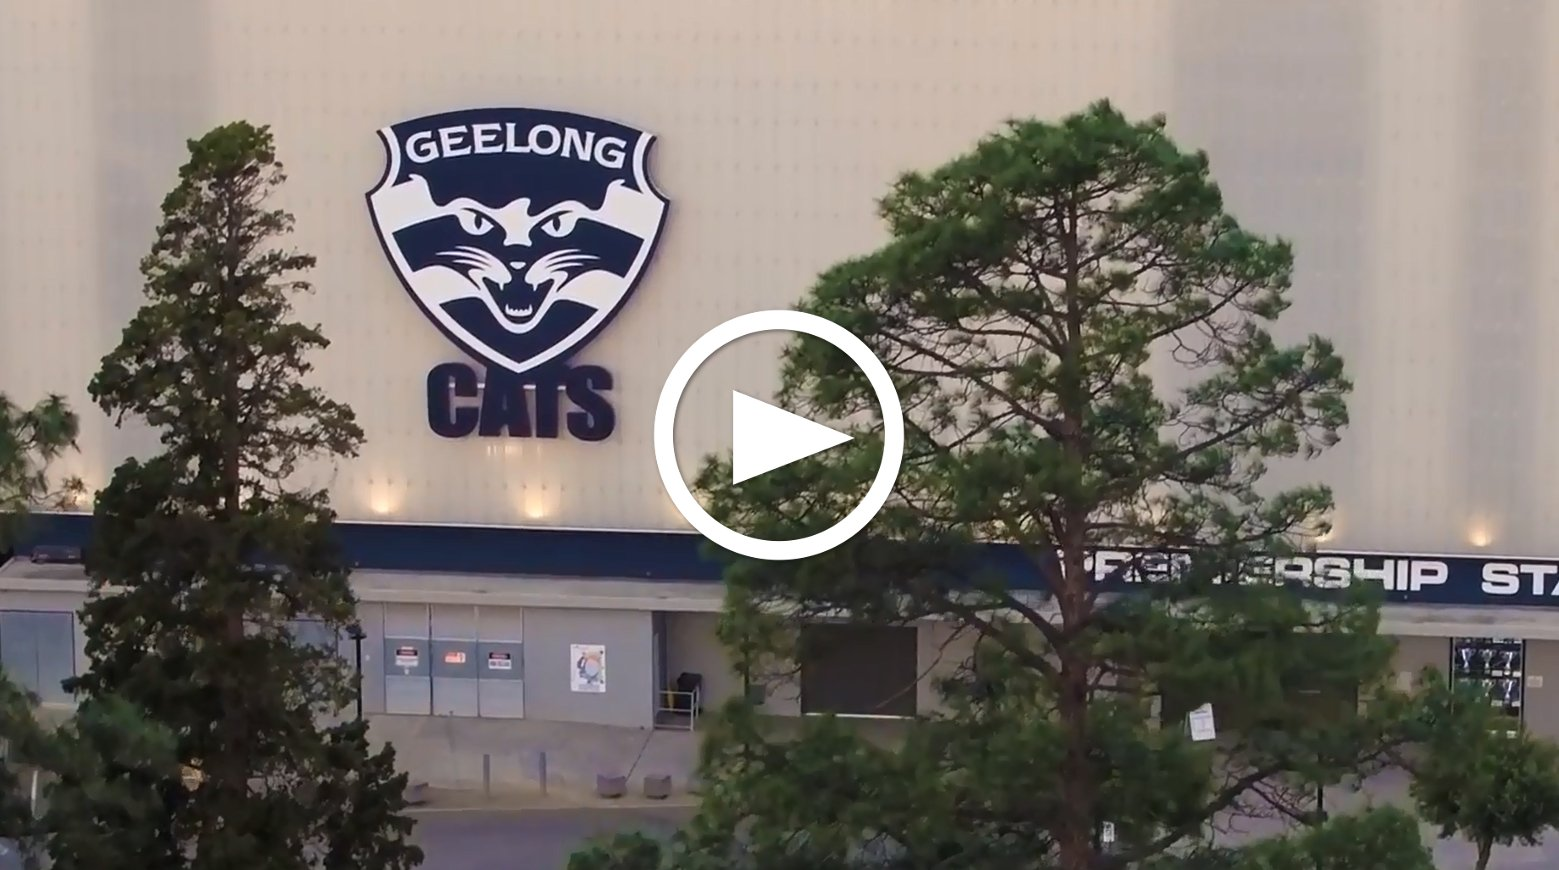 Geelong Football Club